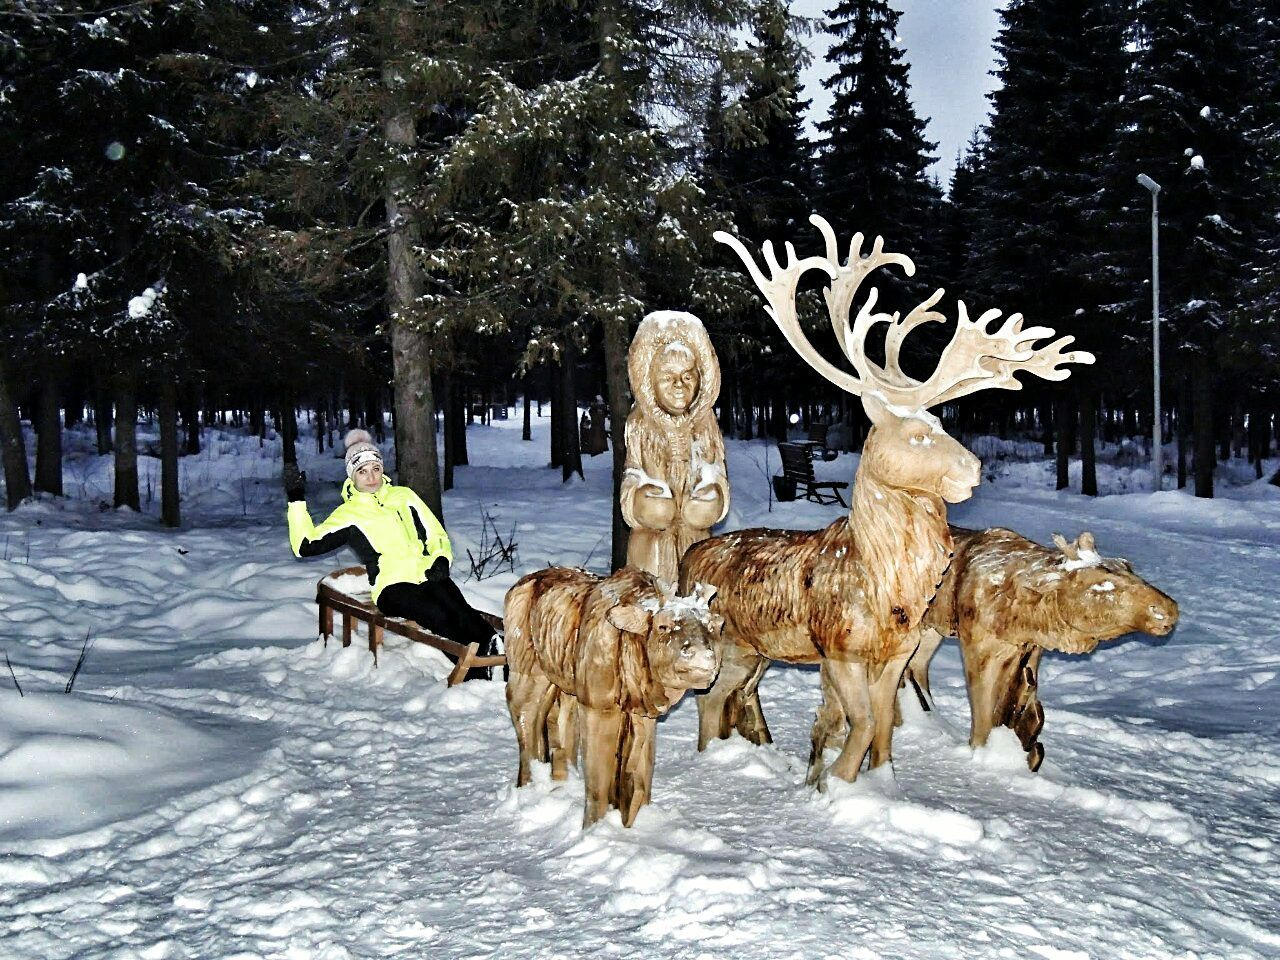 snow, winter, tree, cold temperature, animal themes, reindeer, outdoors, nature, mammal, day, domestic animals, one person, people